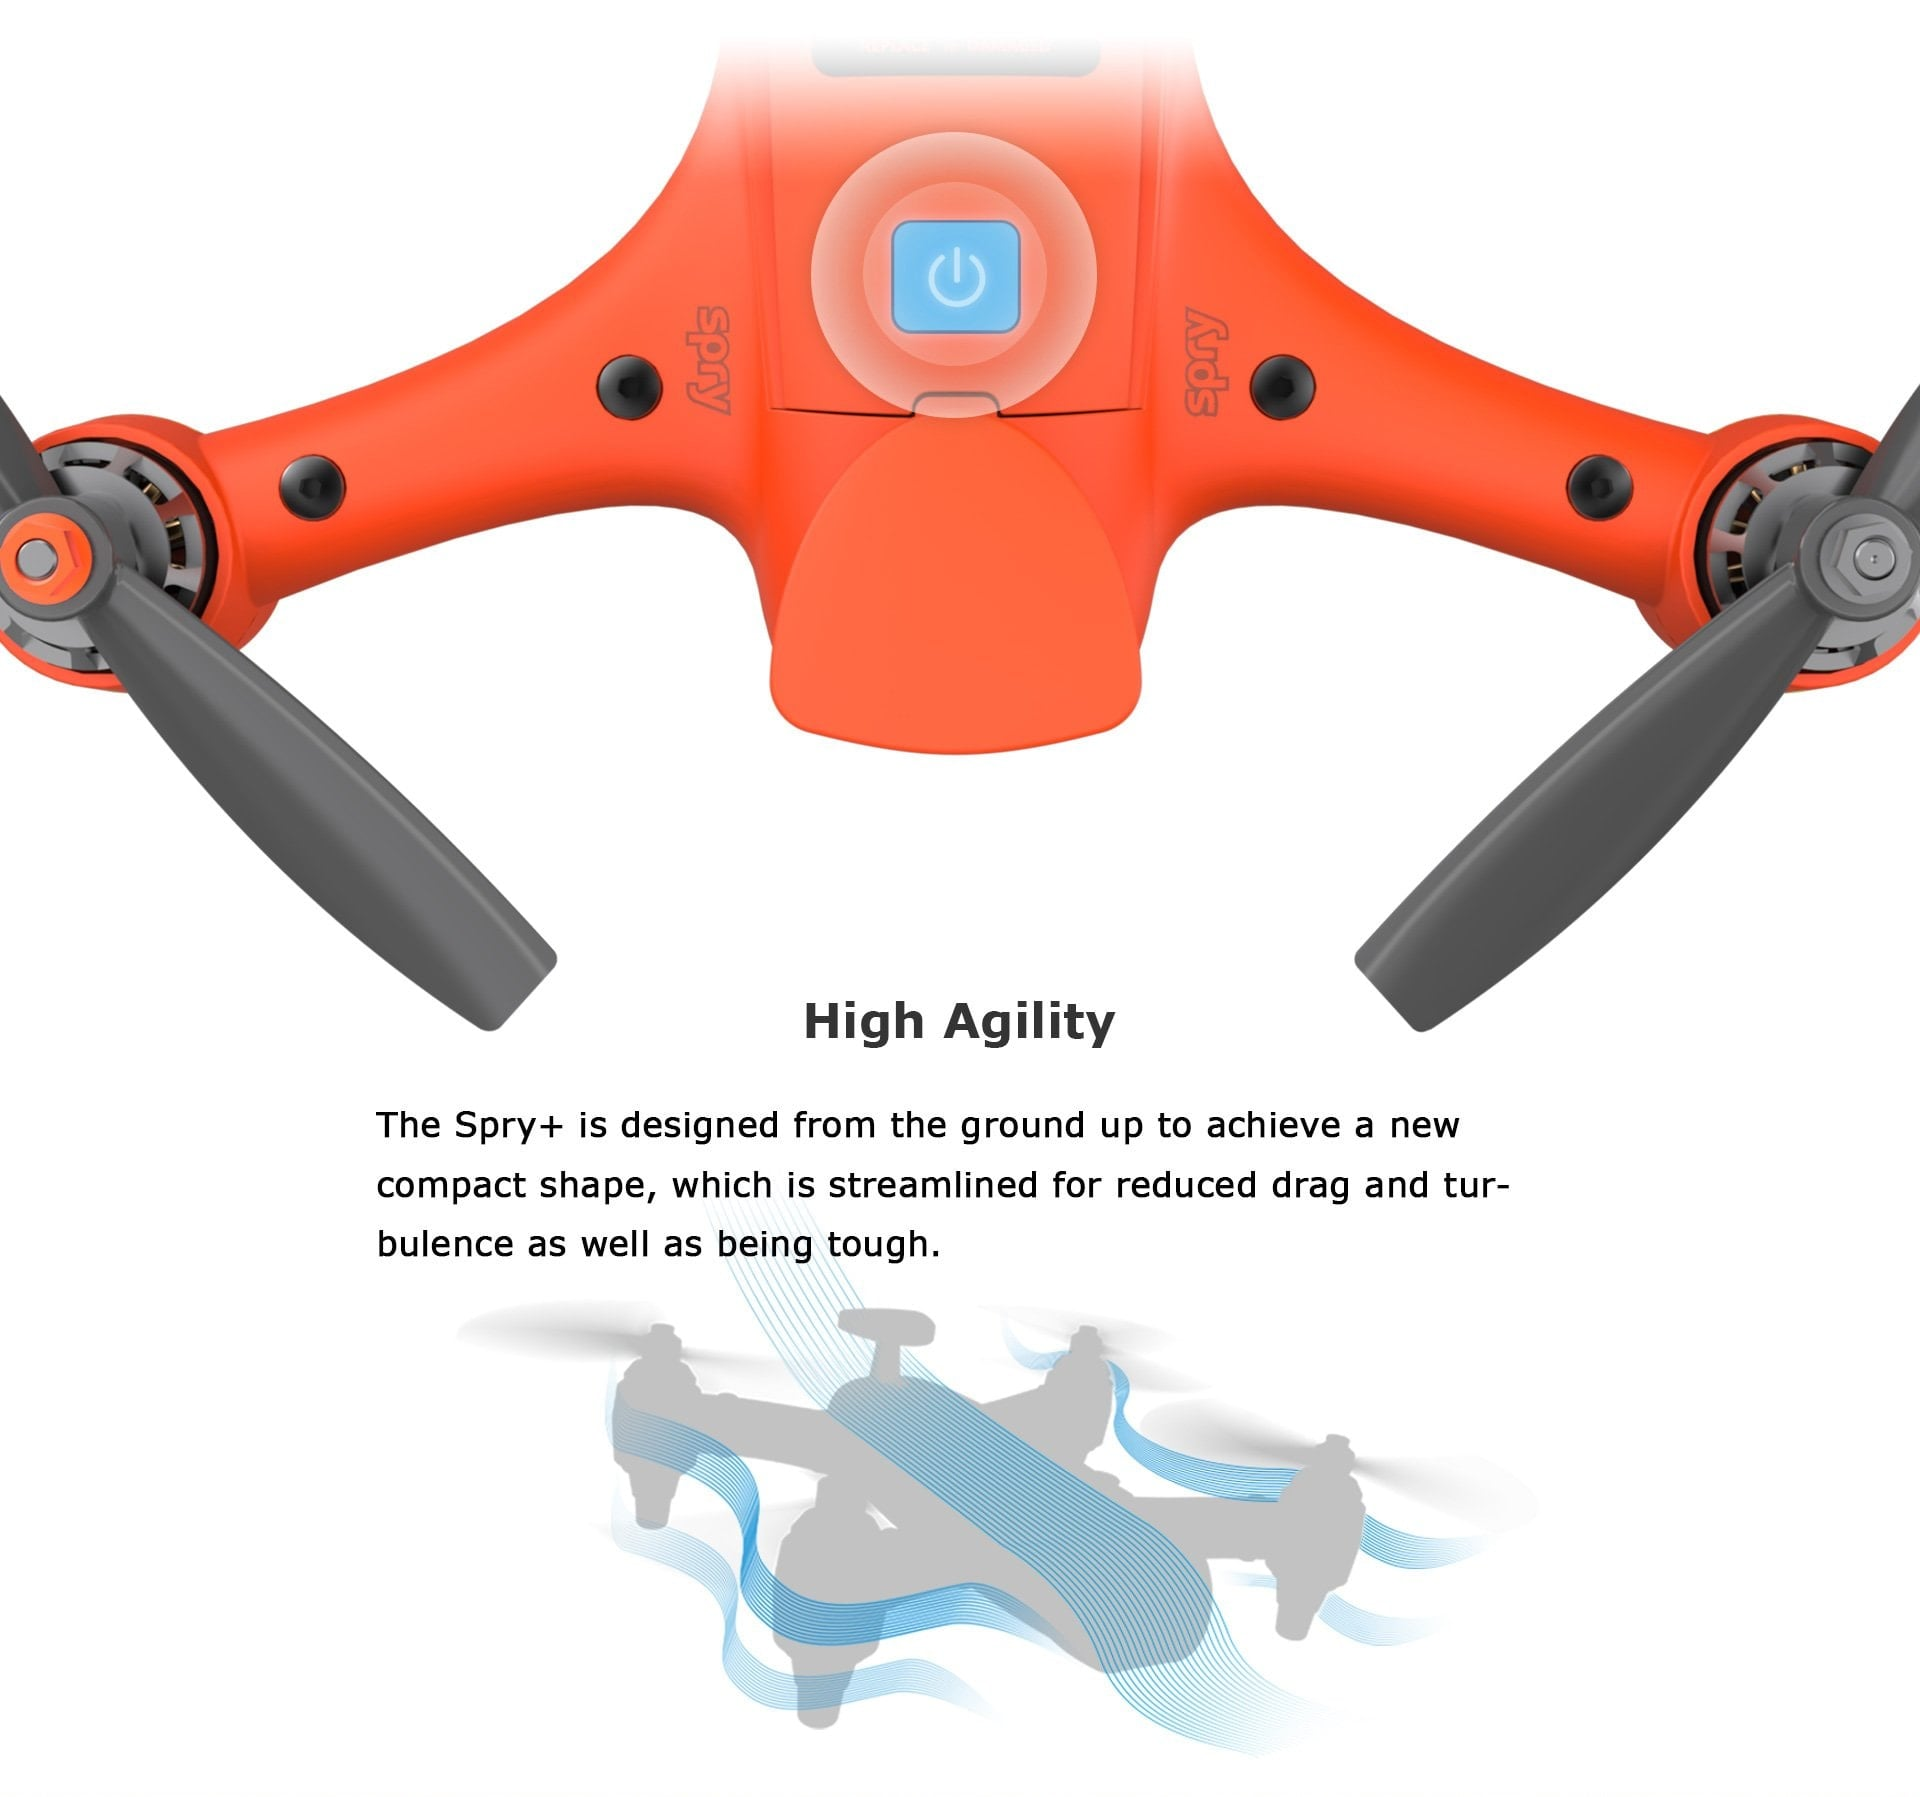 SwellPro - Spry+ Drone High Agility